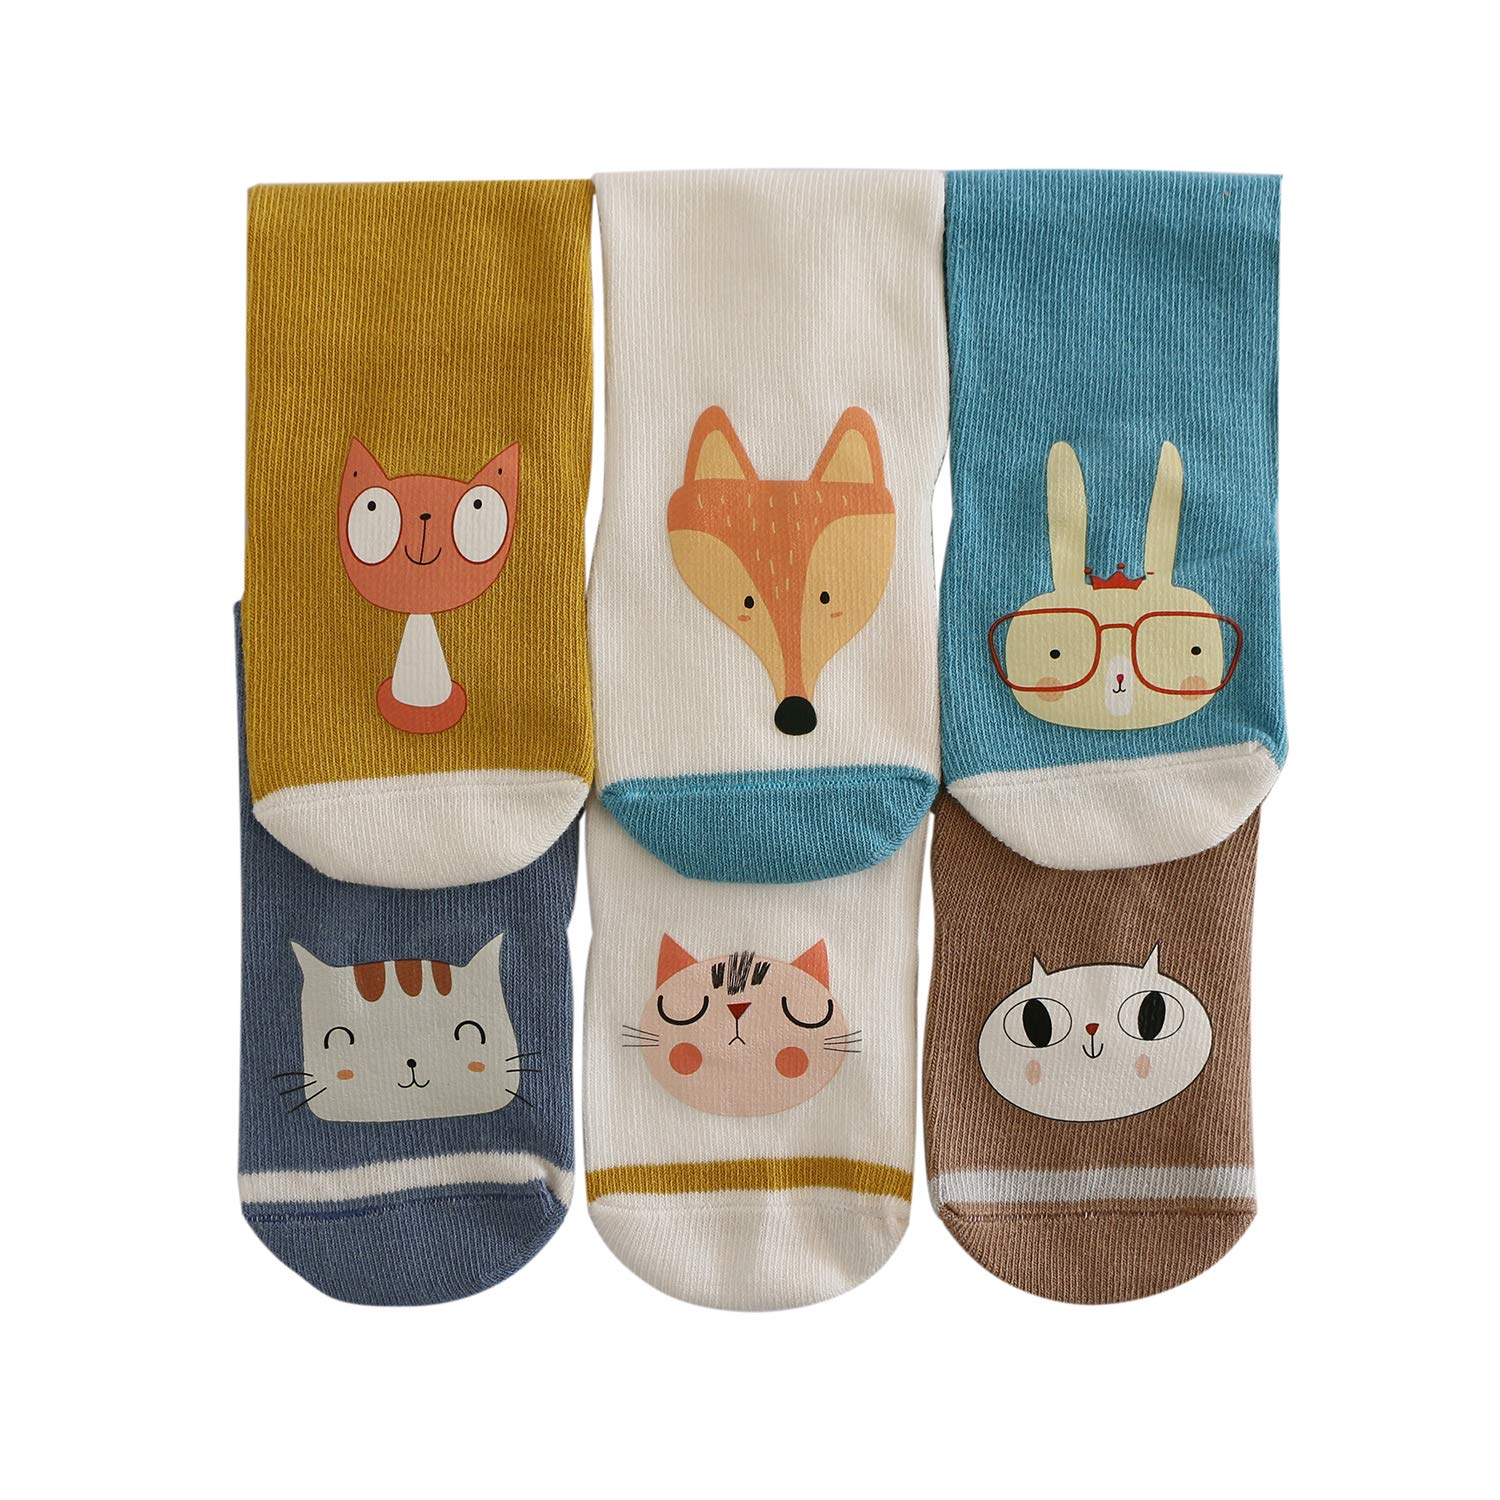 f7e676ba7e1 ... Bestjybt Baby Socks Infants Toddlers Knee Socks Newborn Kids Socks  Animal Knee High Socks Tube Stockings ...